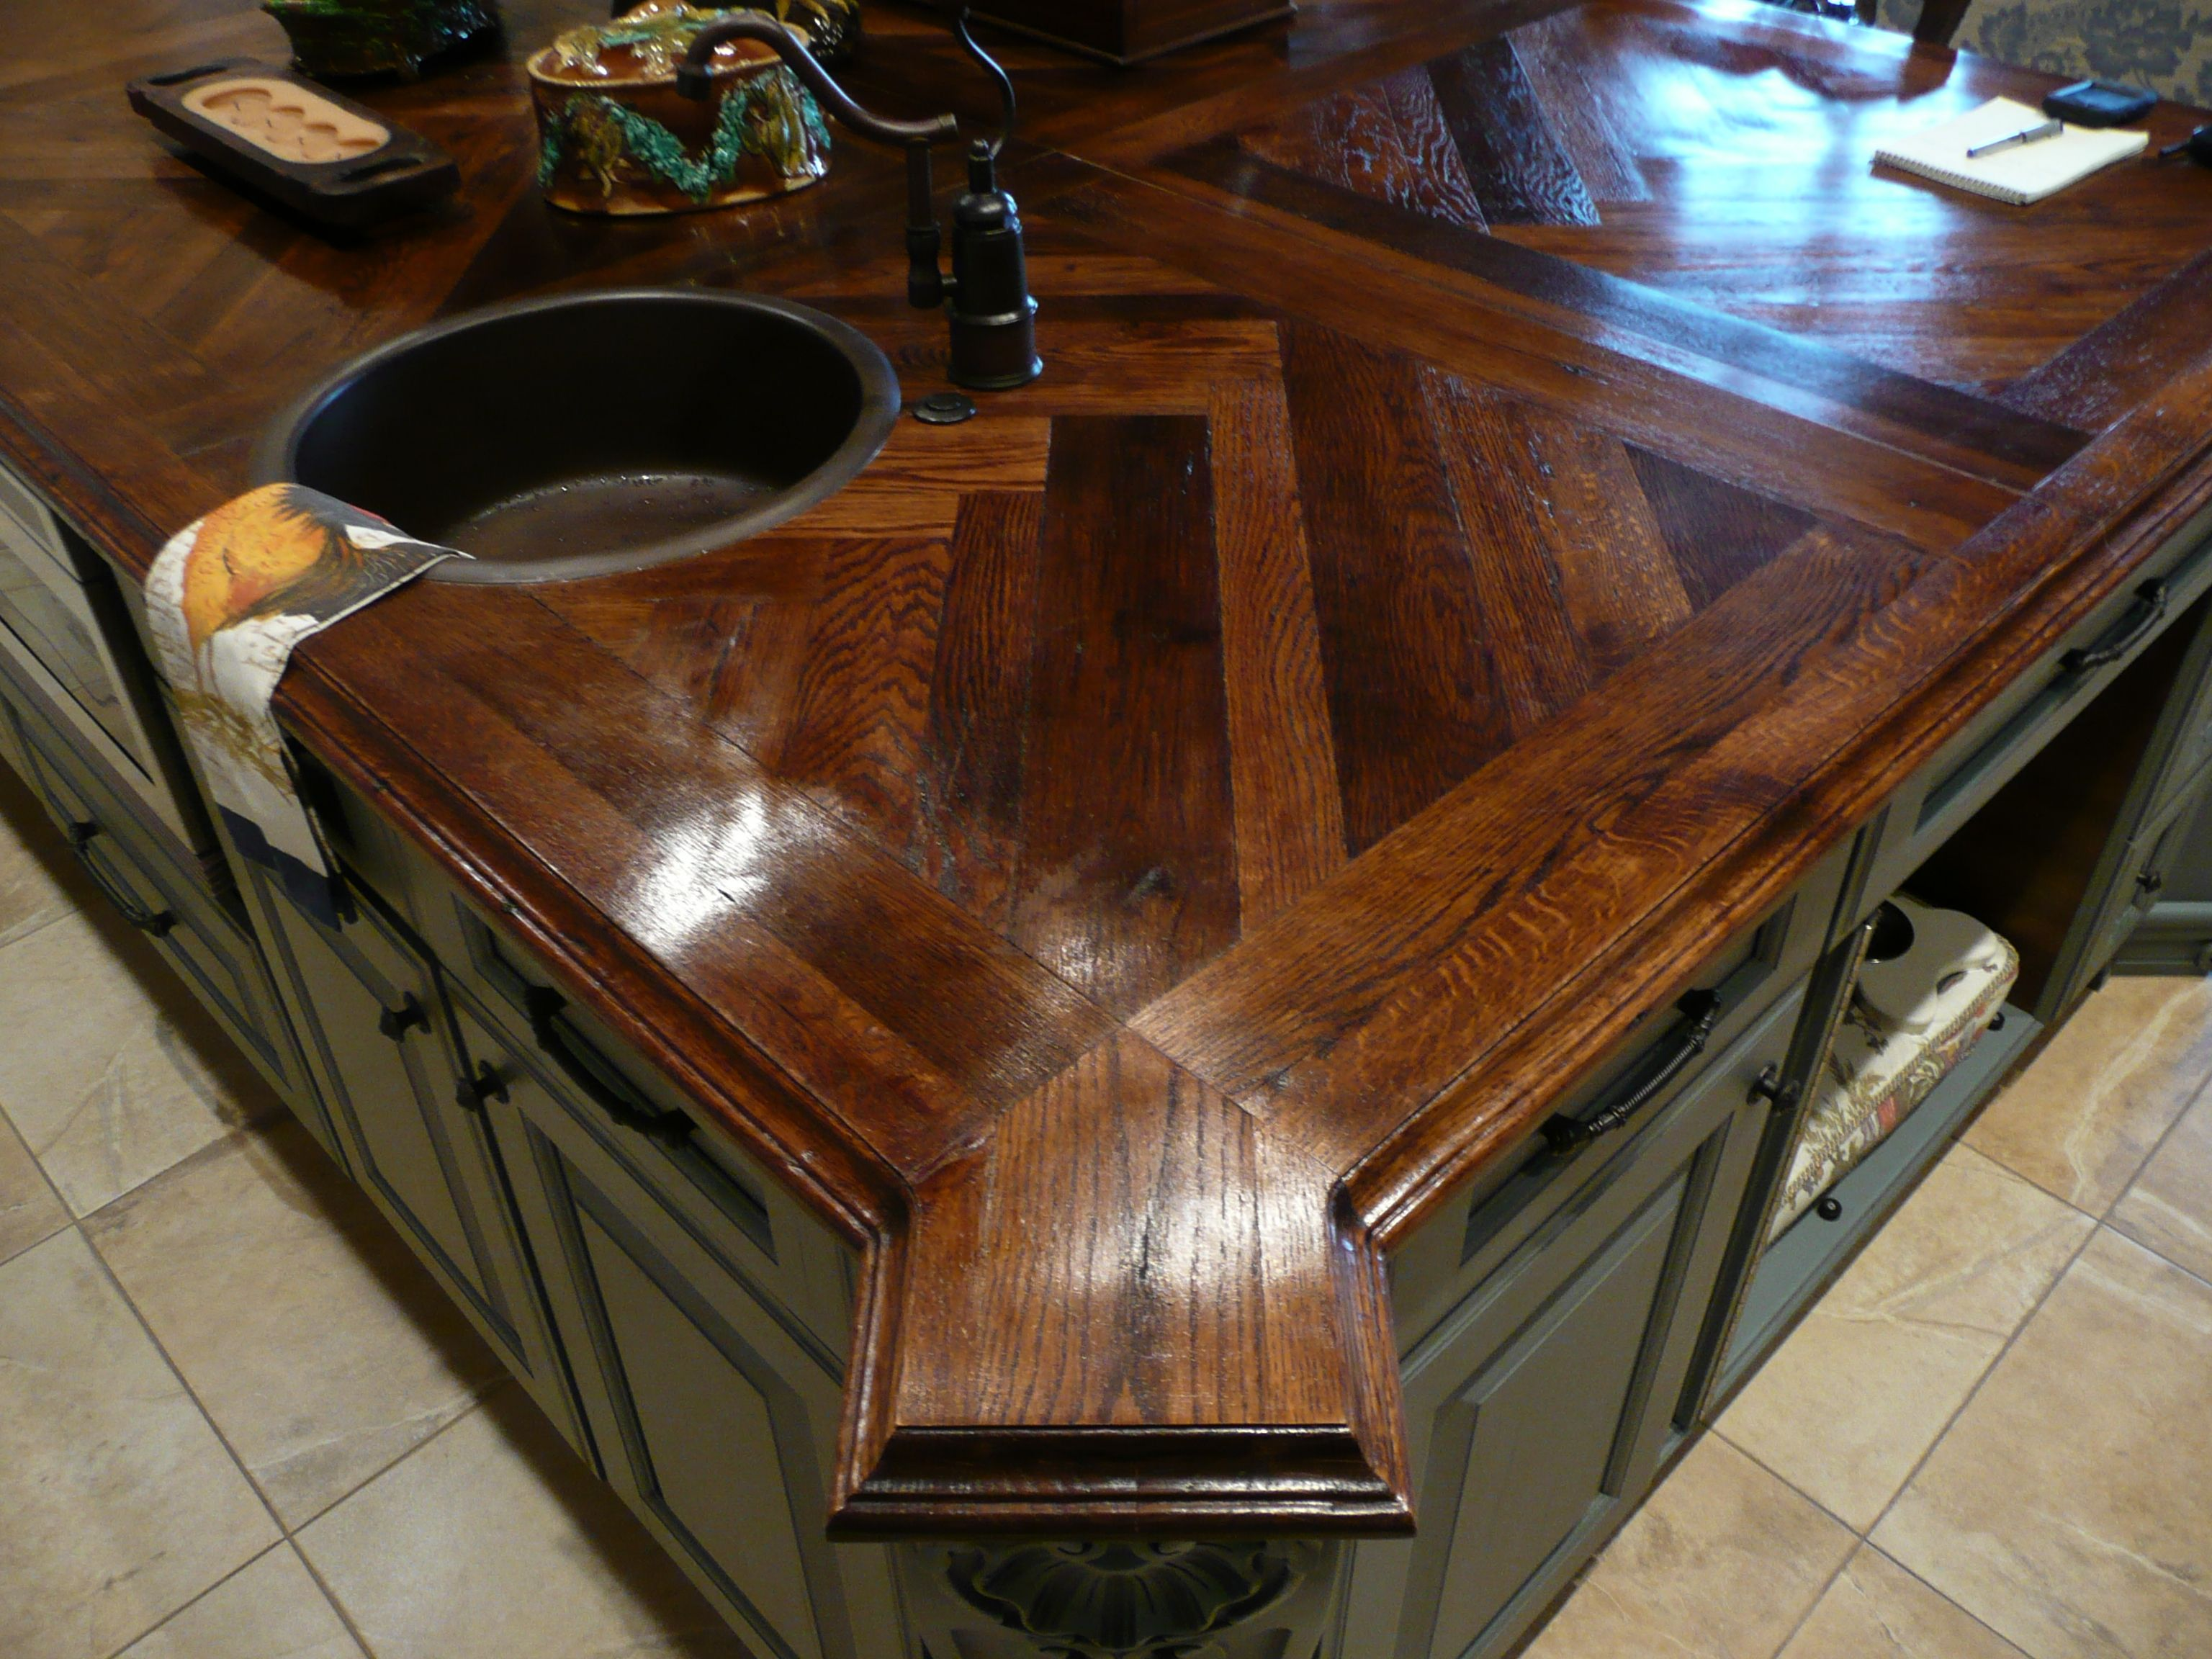 of by rustic old out llc shaker kitchen table dining eco black style wood countertop countertops reclaimed swamp hand worktop top island made friendly cabinets from tables heirloom crafted custom barn